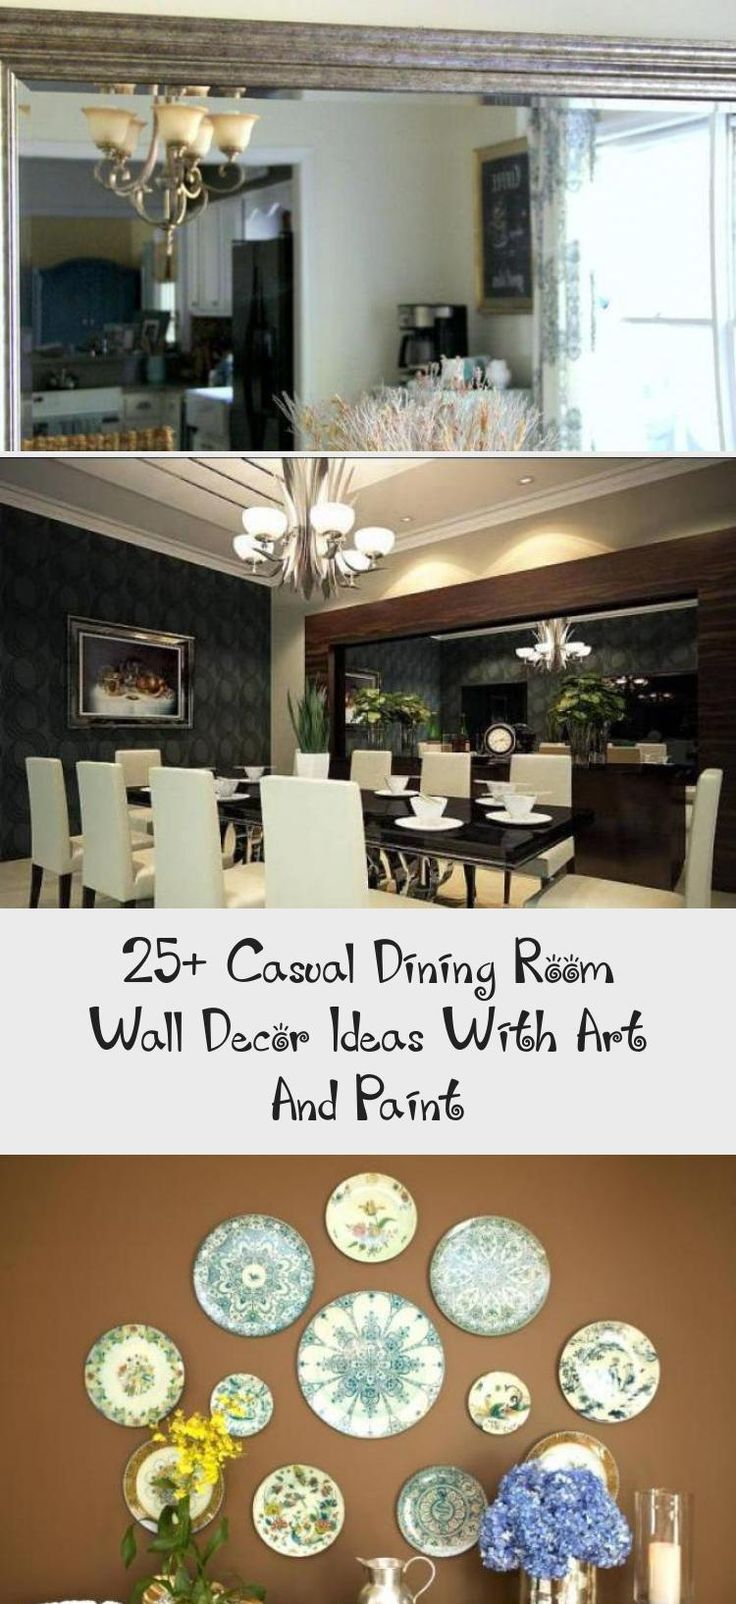 25+ Casual Dining Room Wall Decor Ideas With Art And Paint ...